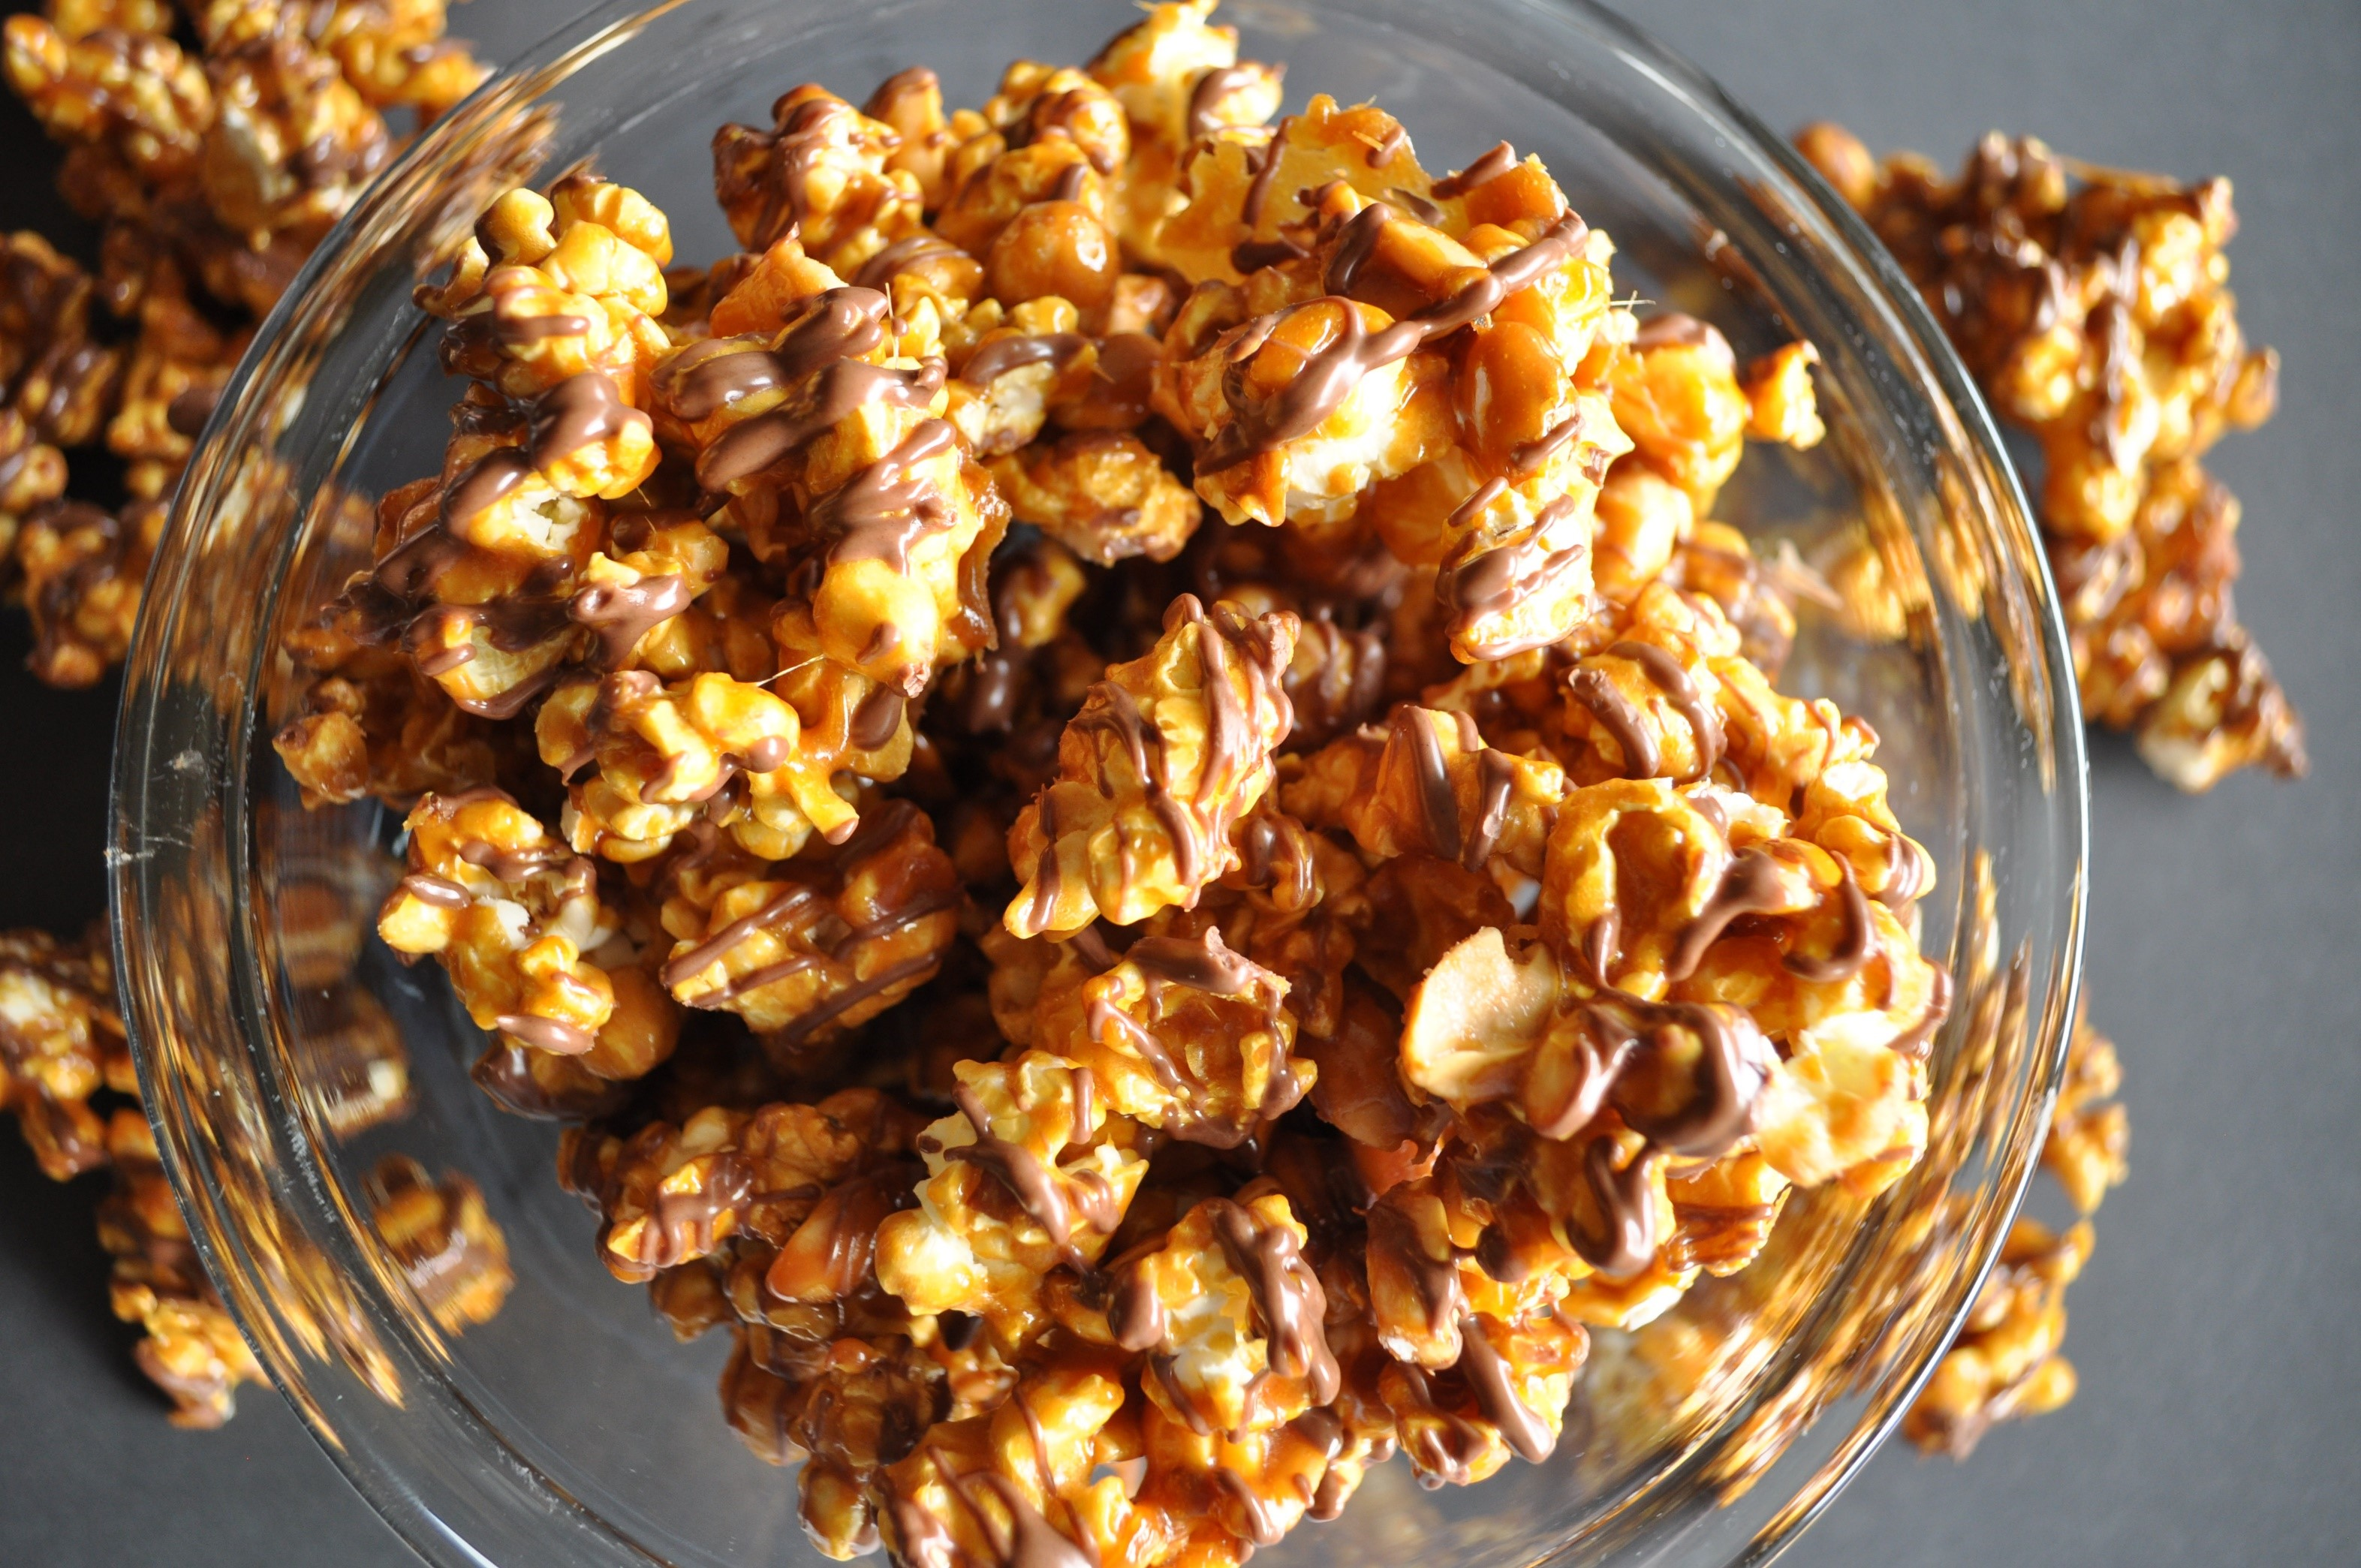 Chocolate-Drizzled Caramel Corn